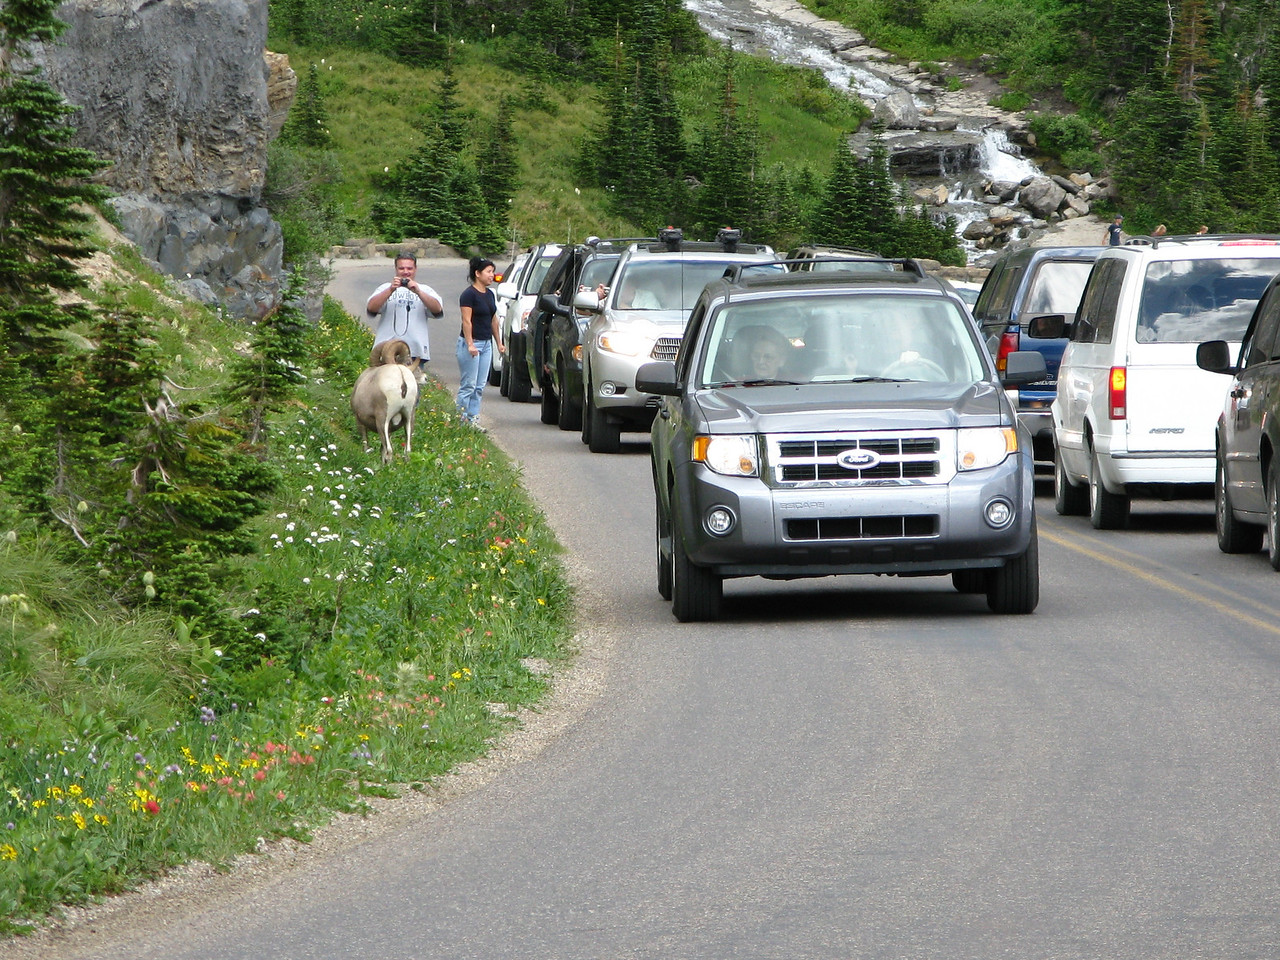 A ram on the side creates a jam of cars on the road.  Note the wildflowers along the road.